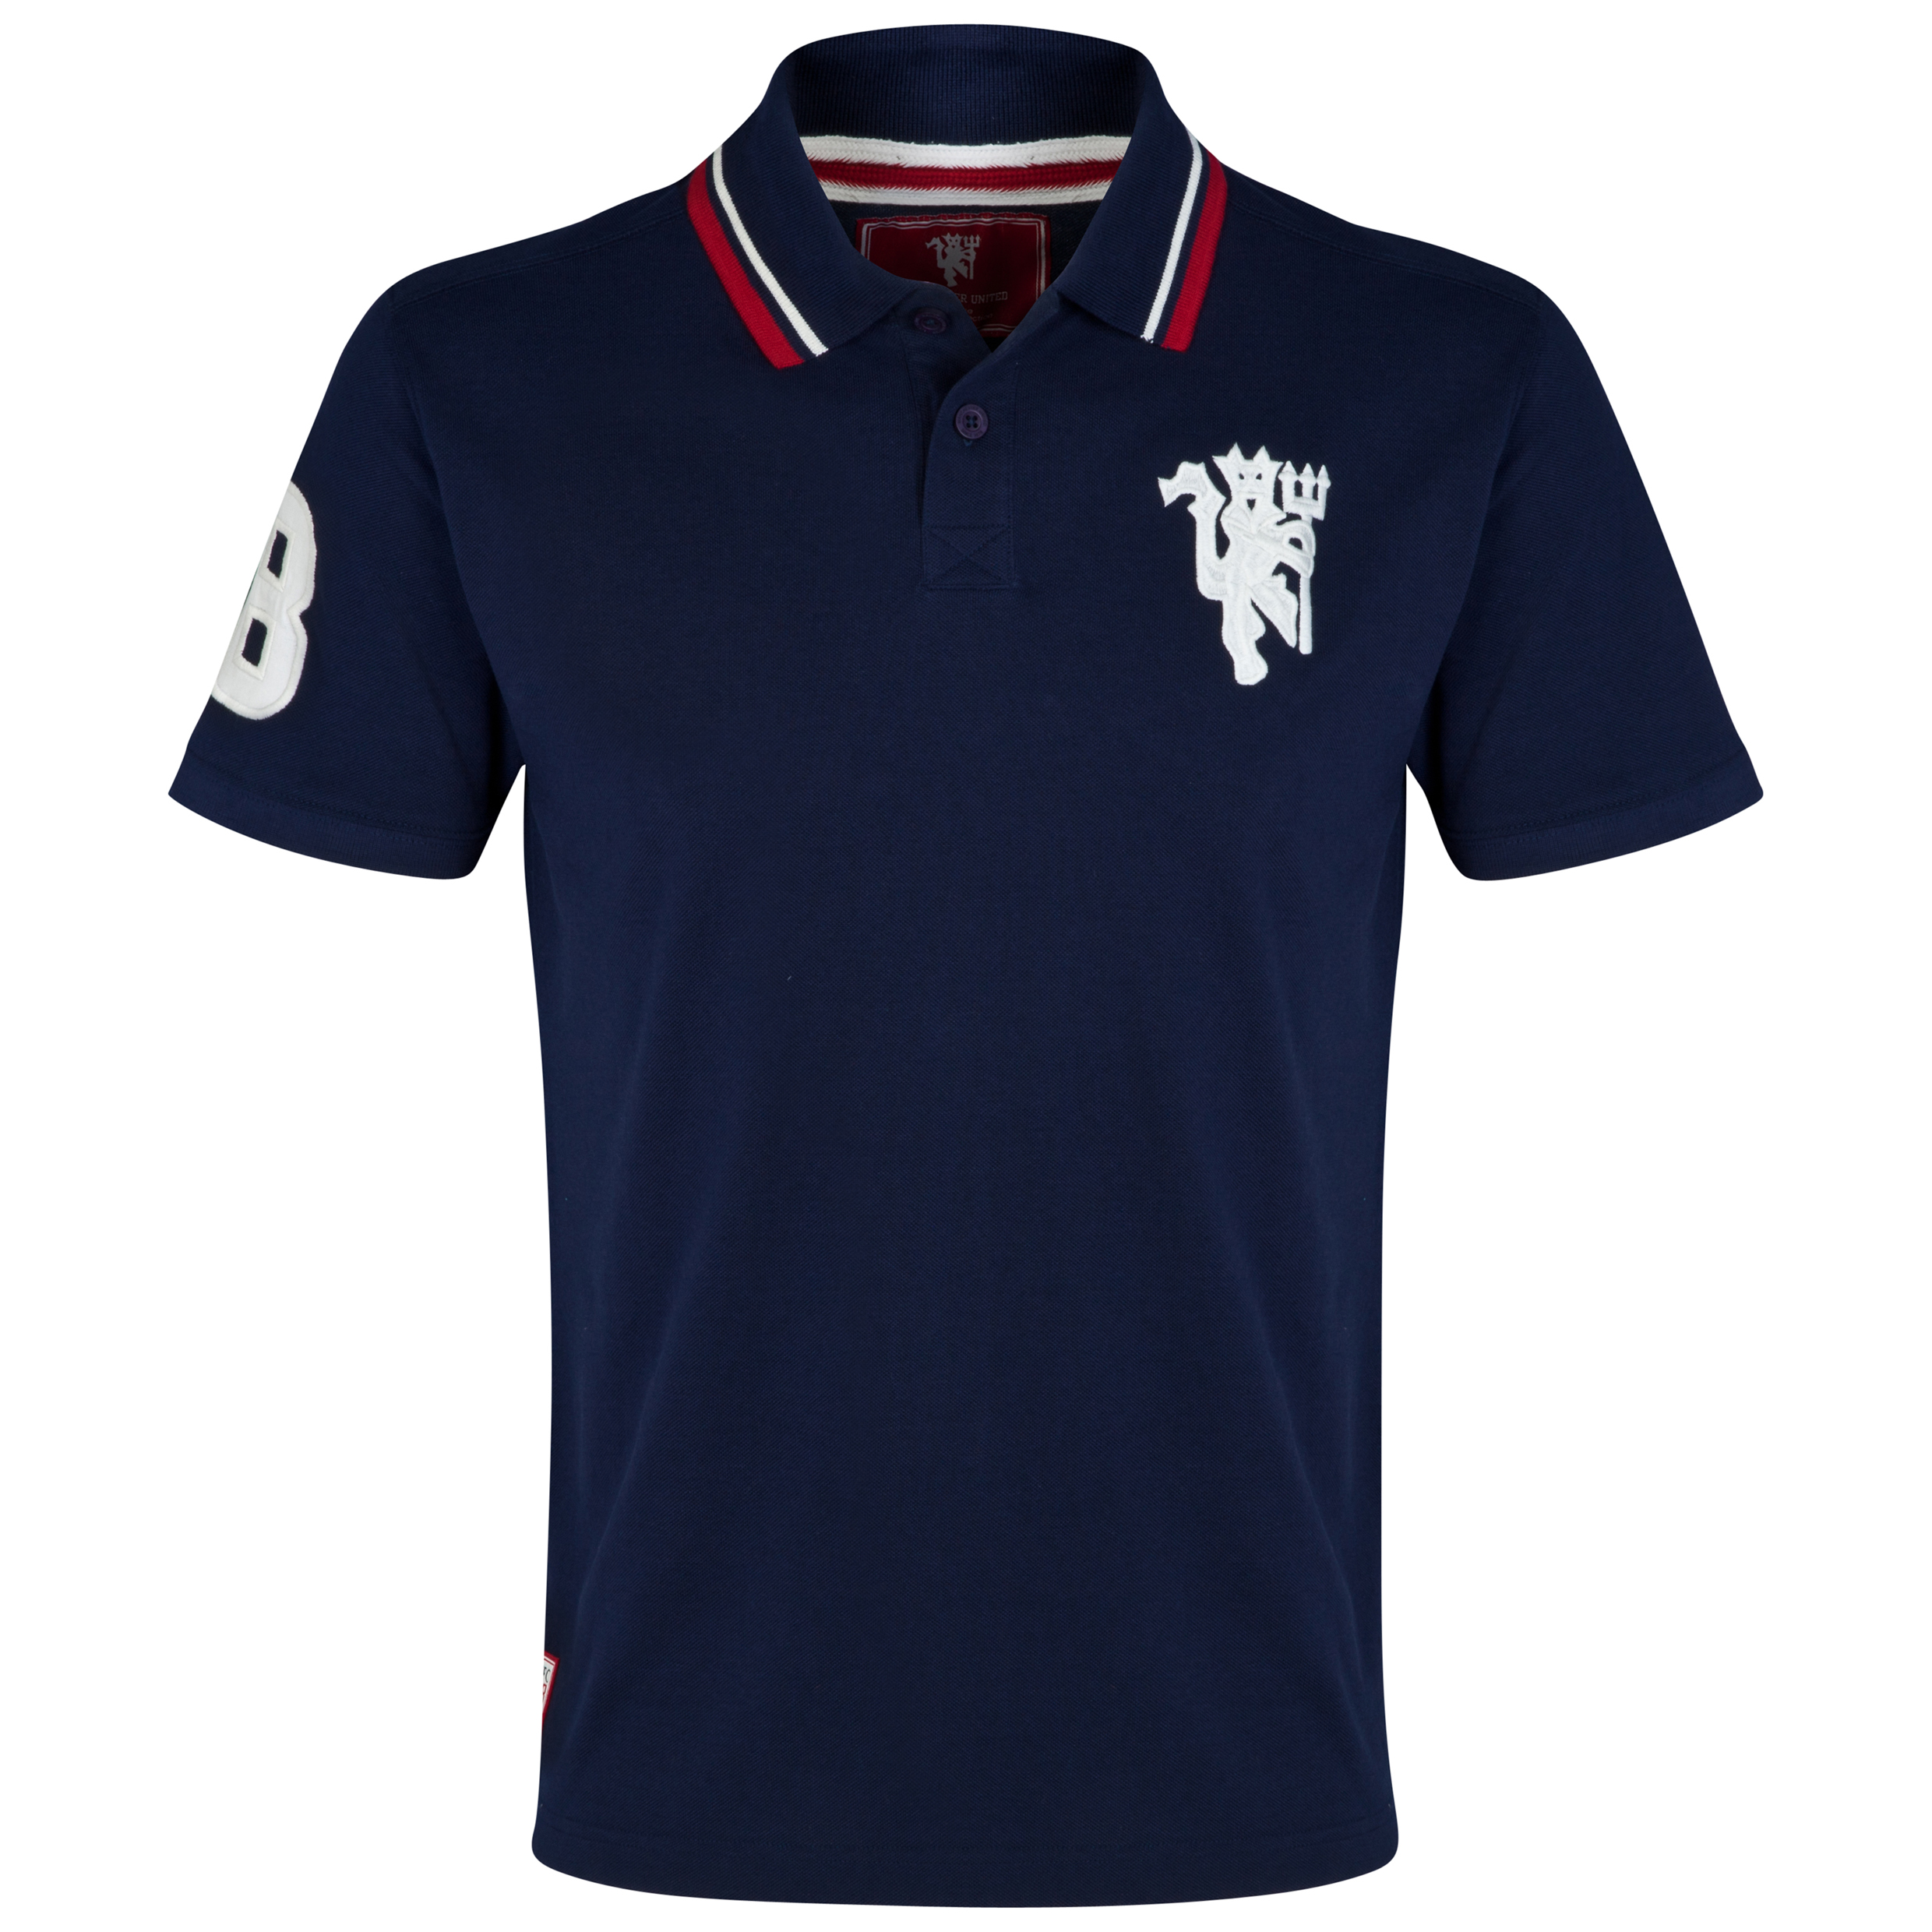 Manchester United Heritage Devil Polo Shirt - Older Boys Navy